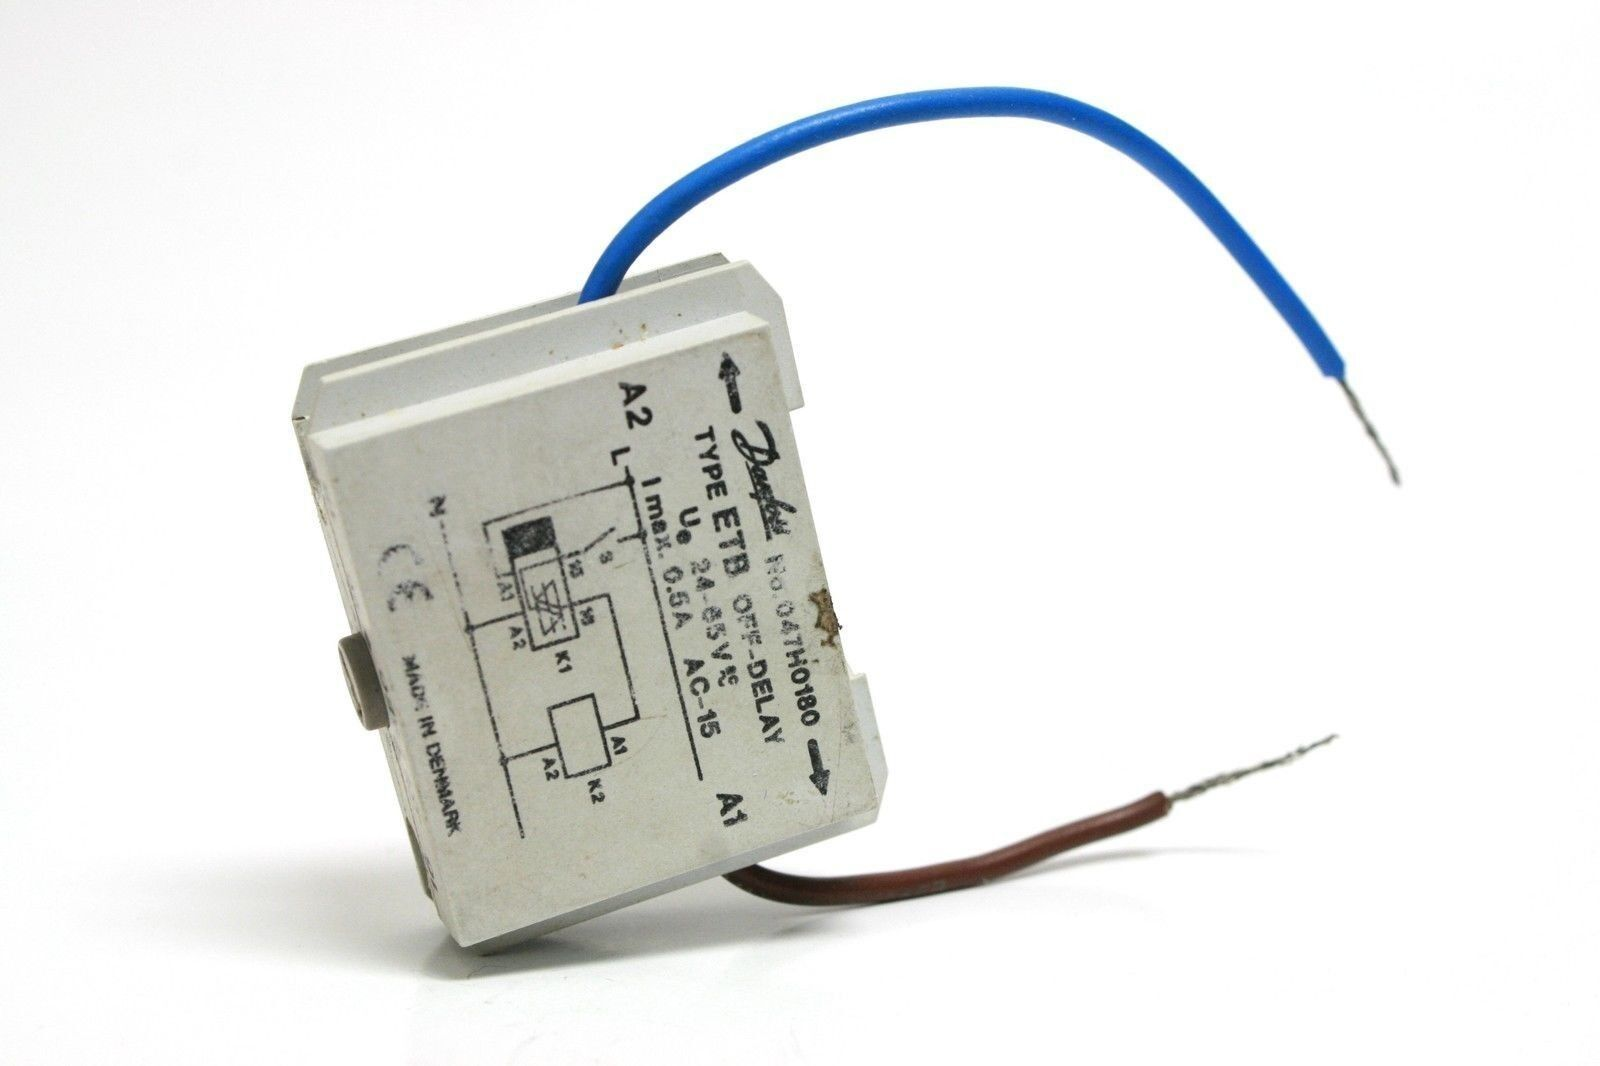 047h0180 Danfoss Timer Block Etb Off Delay 05 20 Sec Ue 24 65v Ac Current Relay Wiring Norton Secured Powered By Verisign